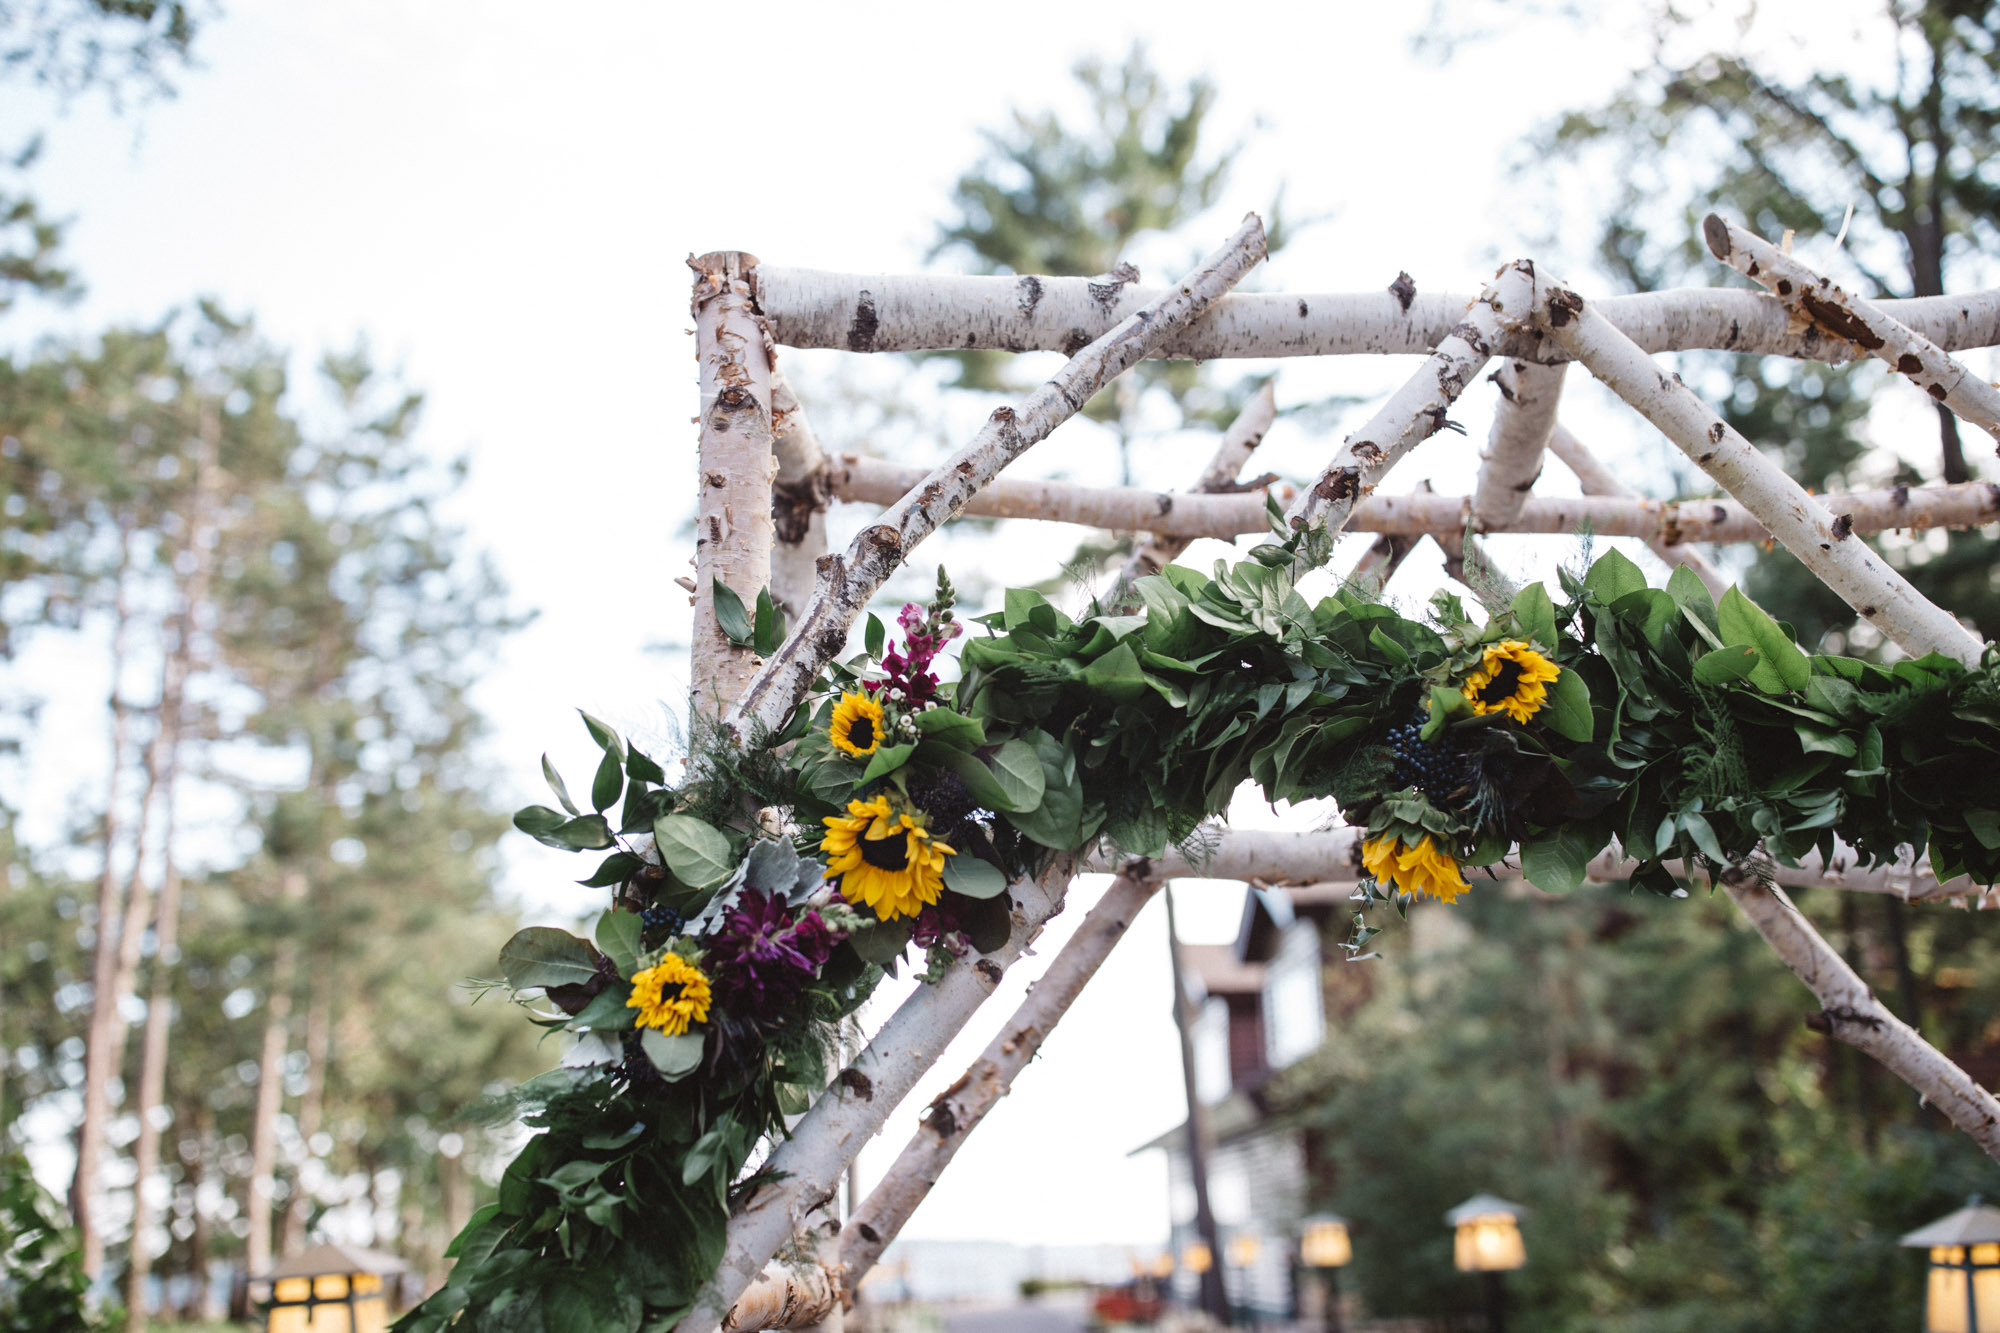 Floral wedding altar by Bloom Designs. Photography by Britt DeZeeuw, Grand View Lodge photographer.